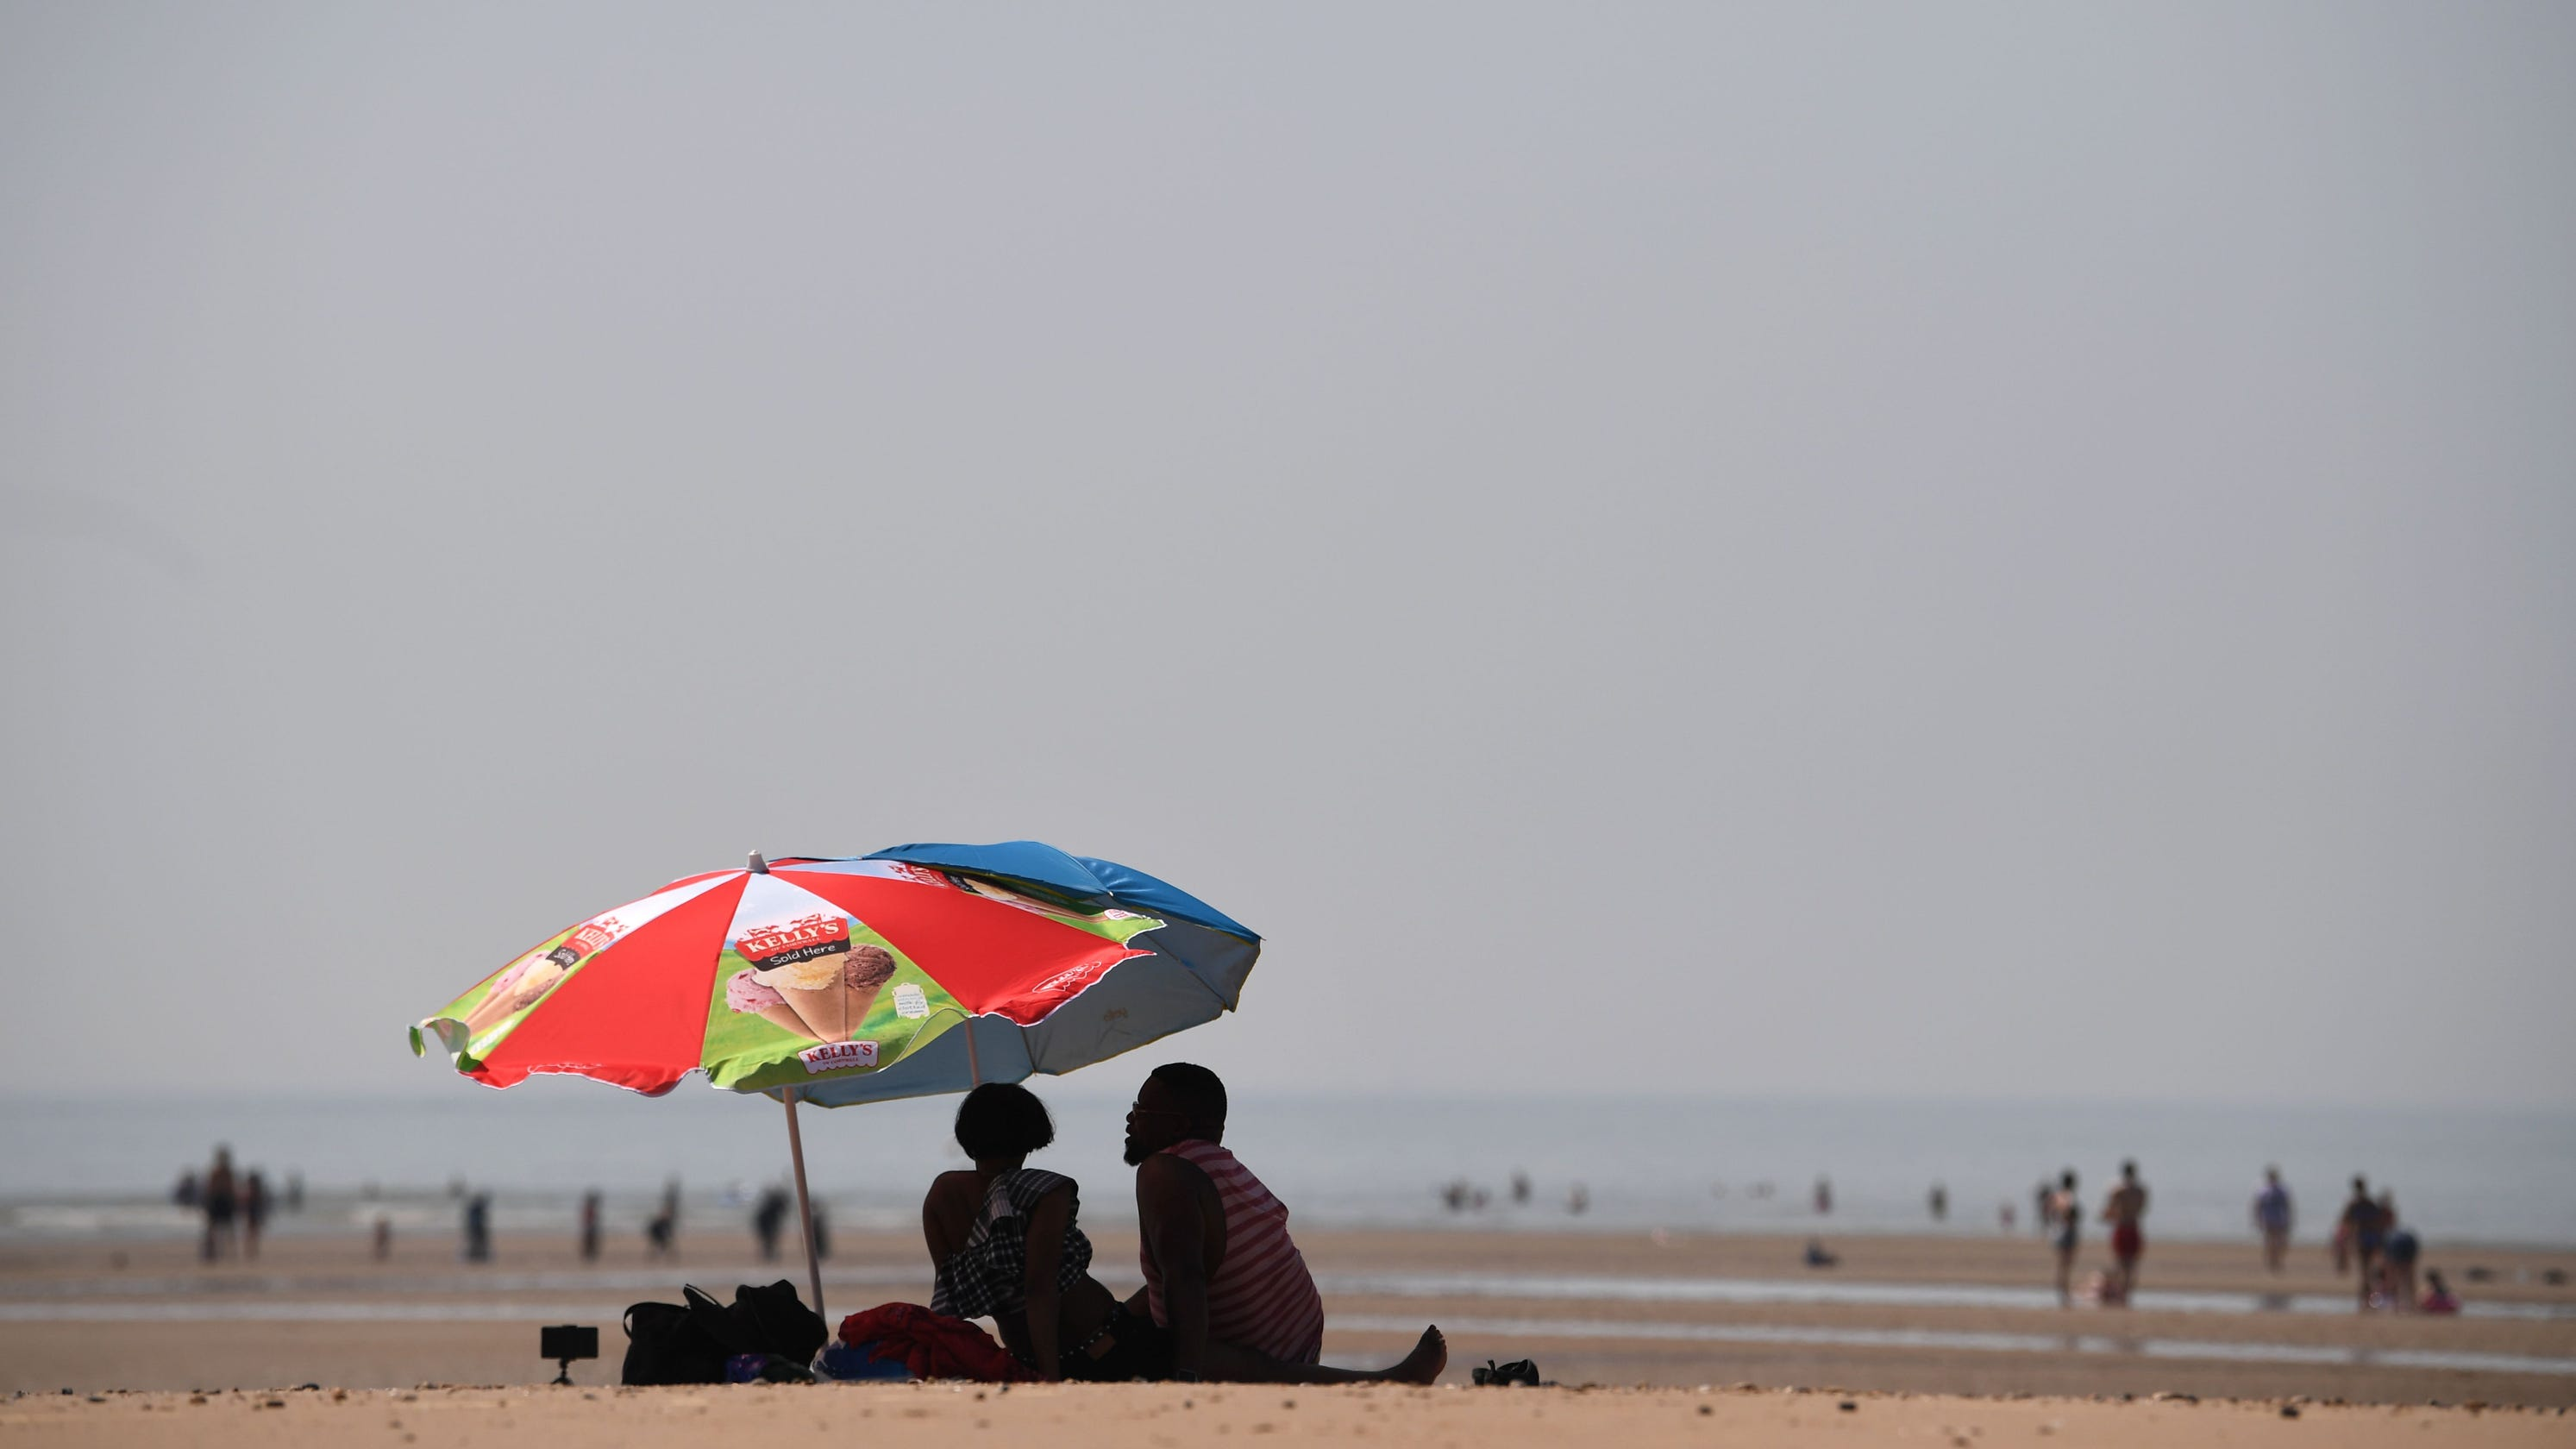 United Kingdom sets all-time high temperature record